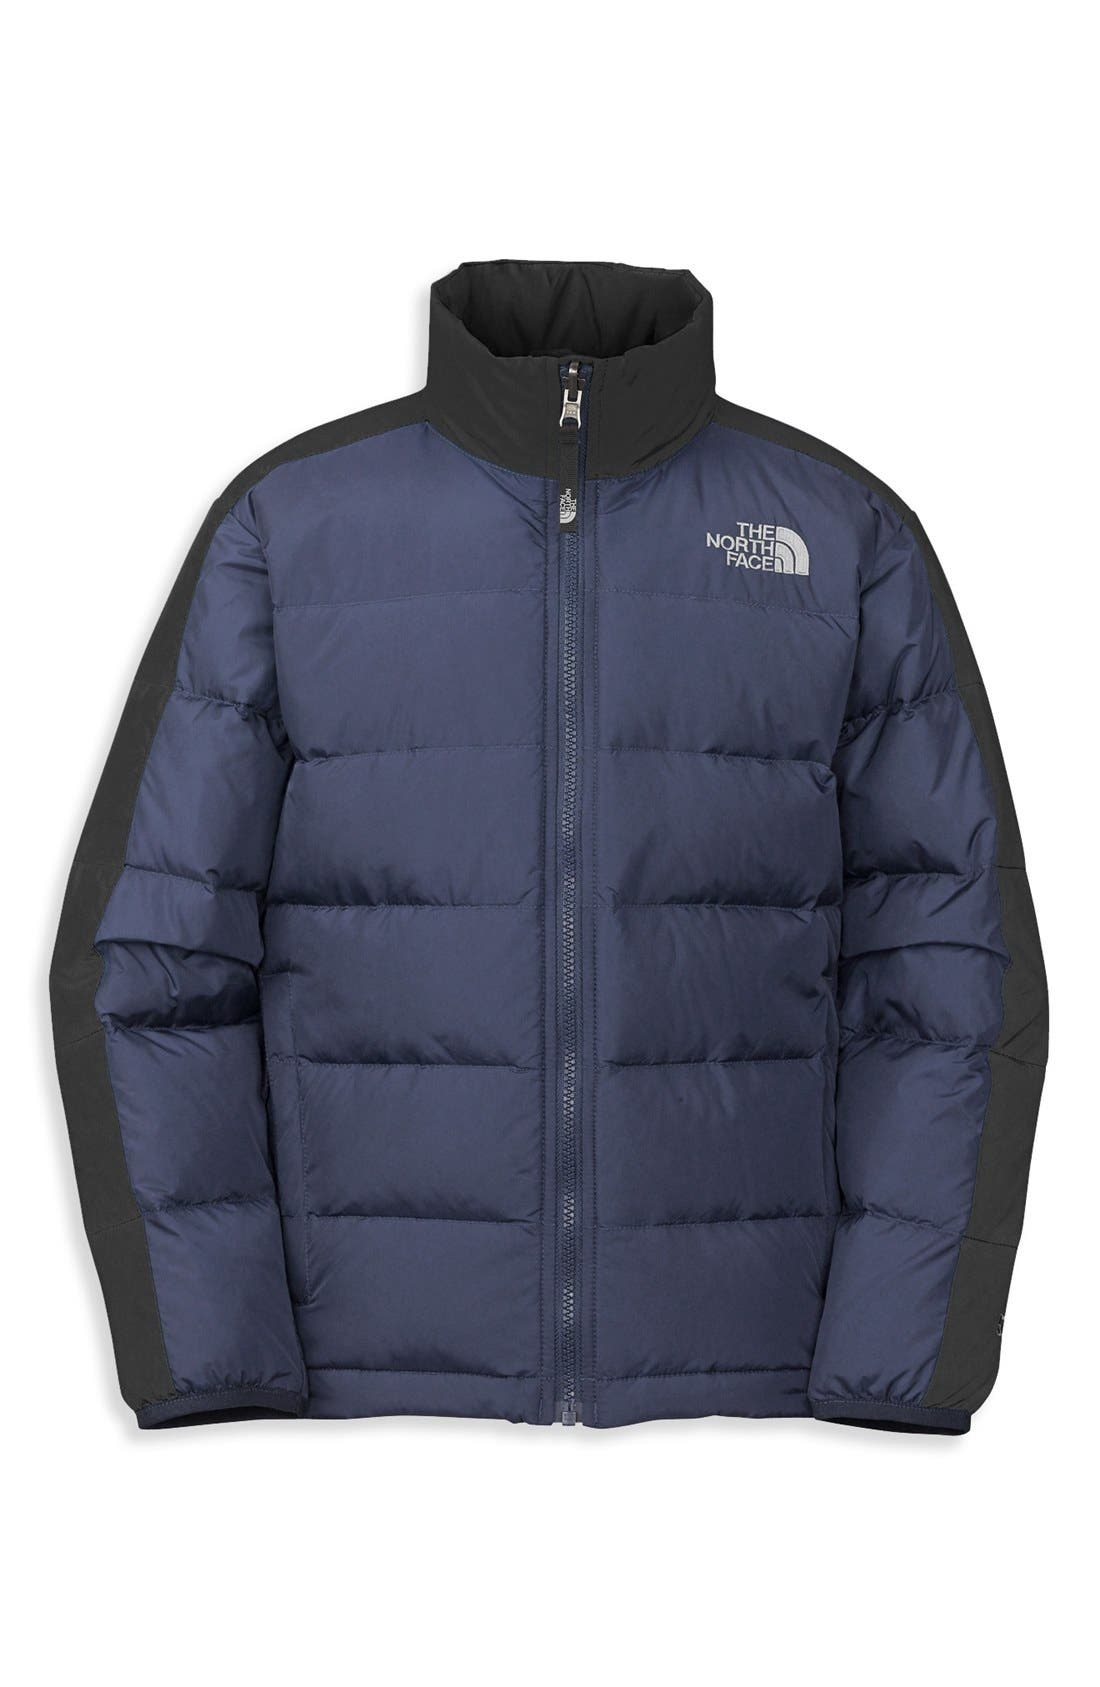 Alternate Image 1 Selected - The North Face 'Aconcagua' Down Jacket (Big Boys)